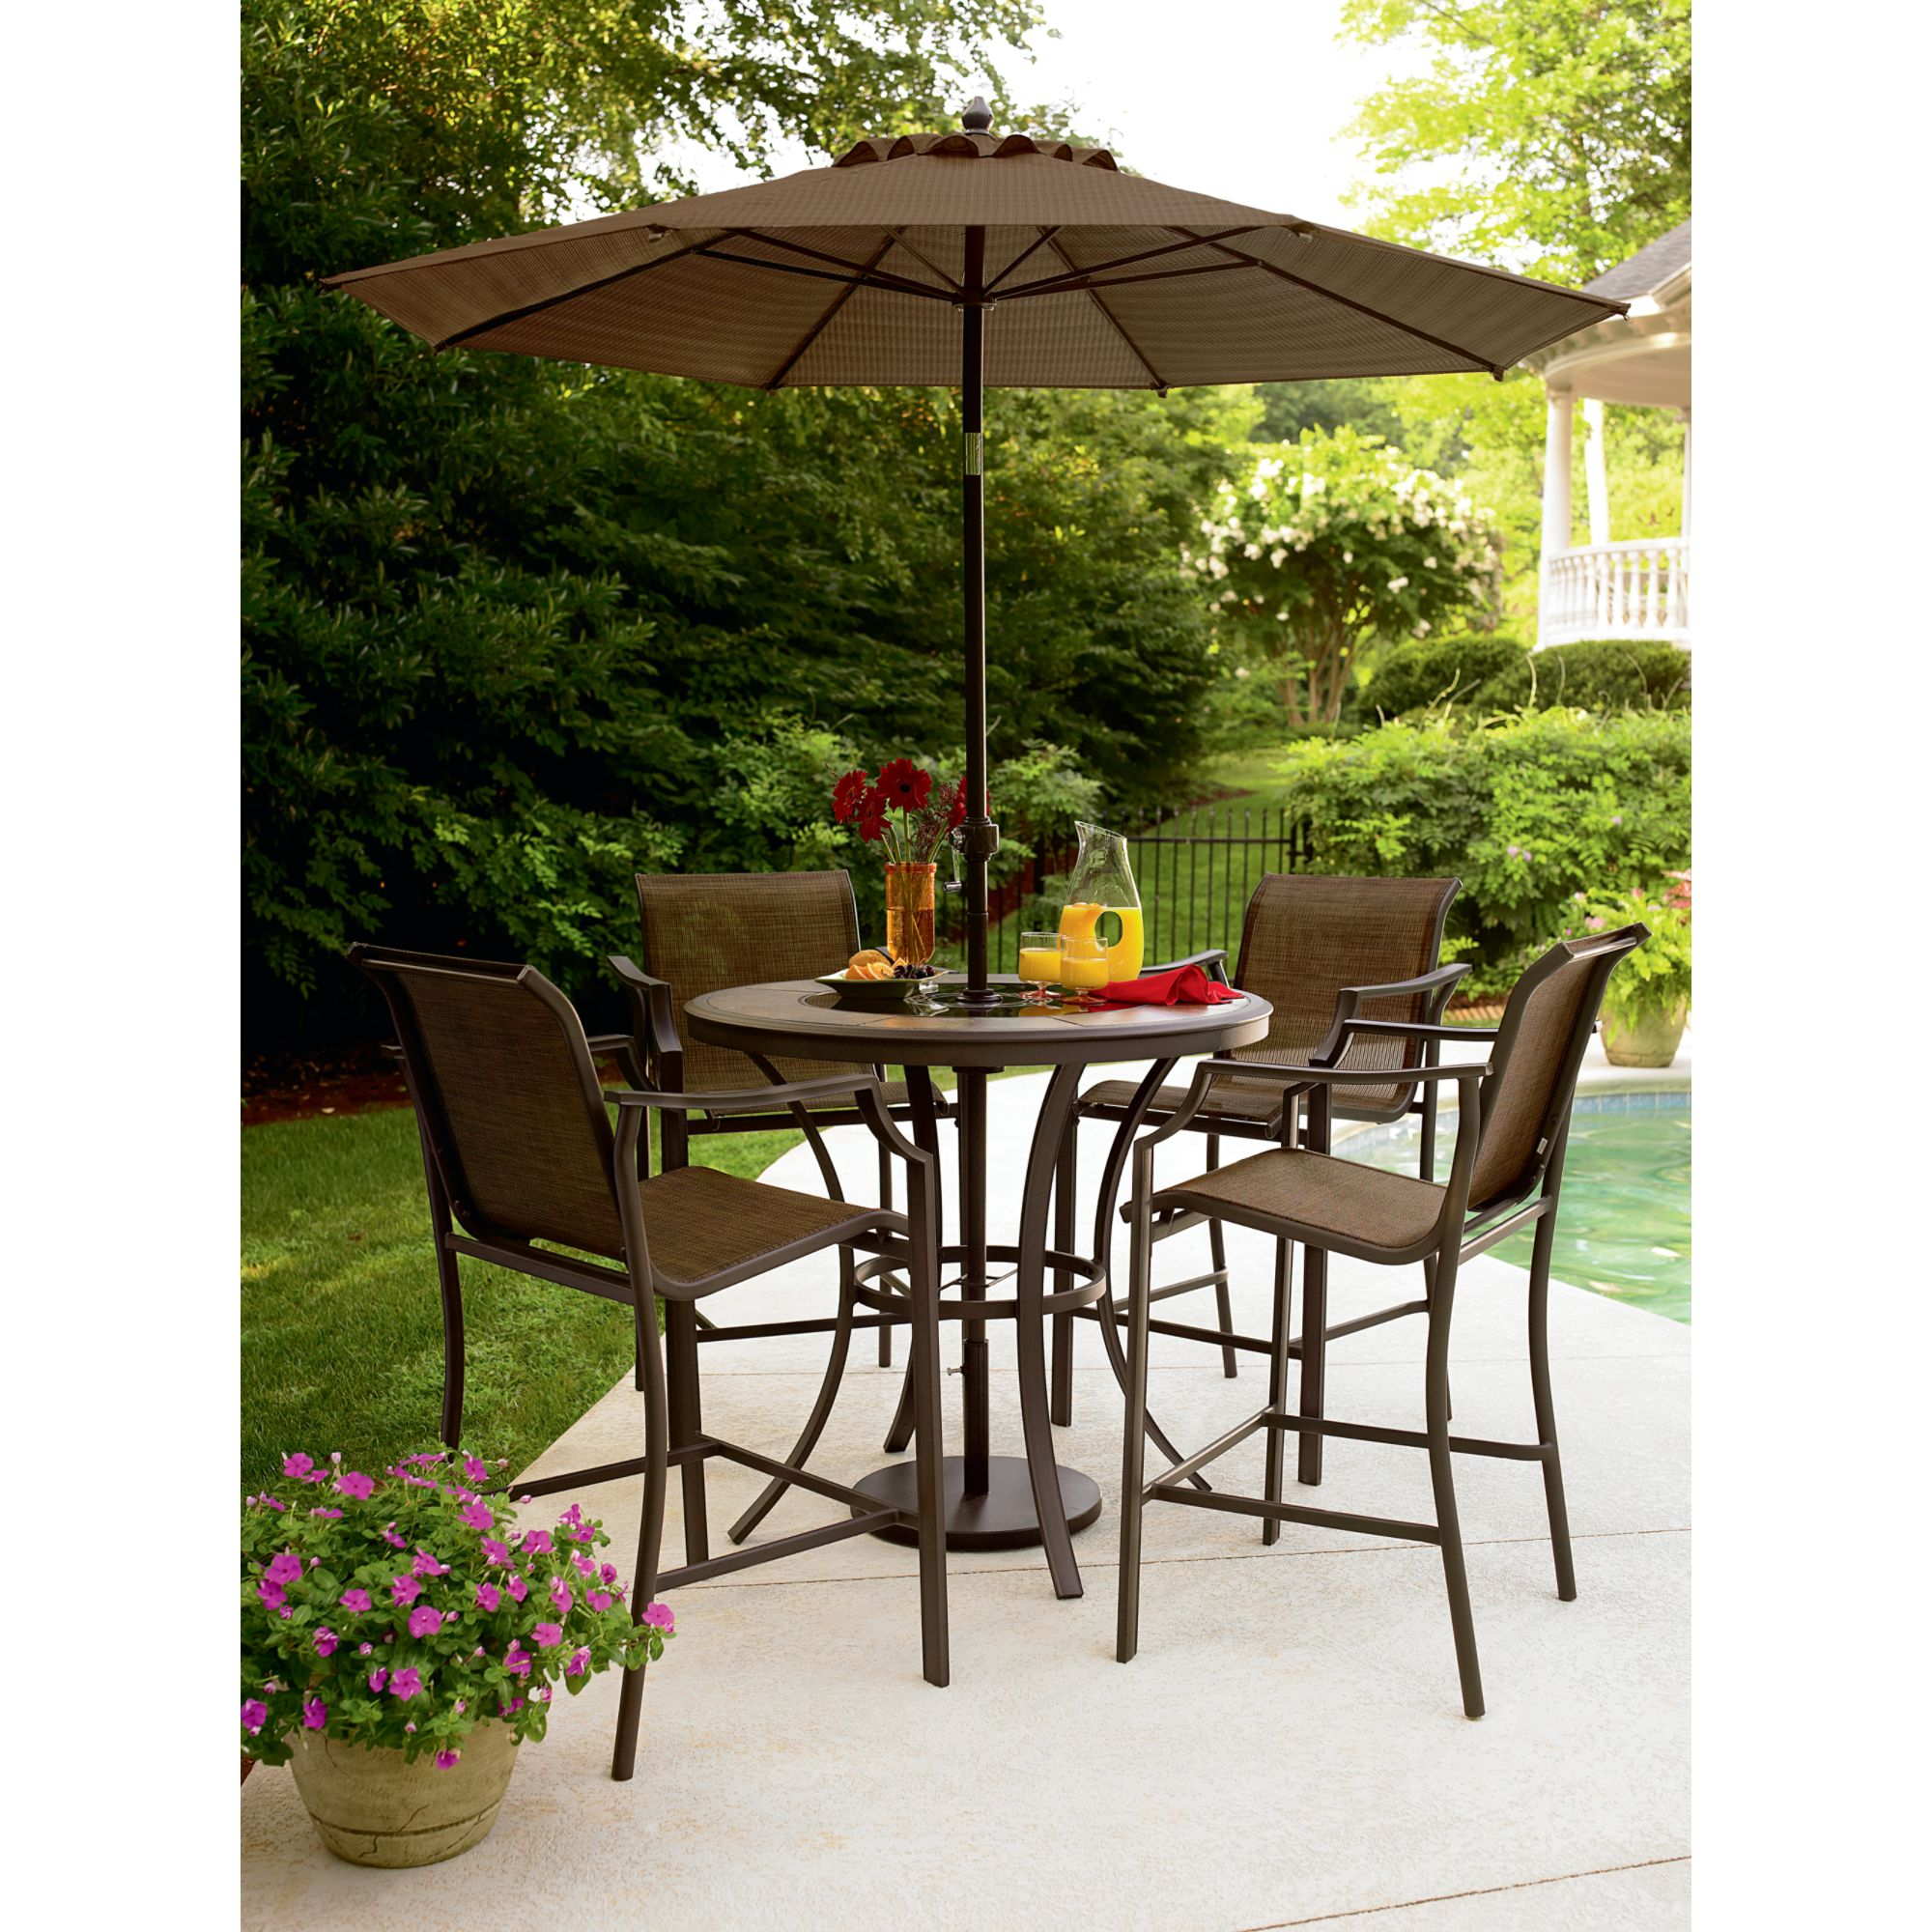 high top patio table and chairs arthrex beach chair weight limit garden oasis cooper lighted dining